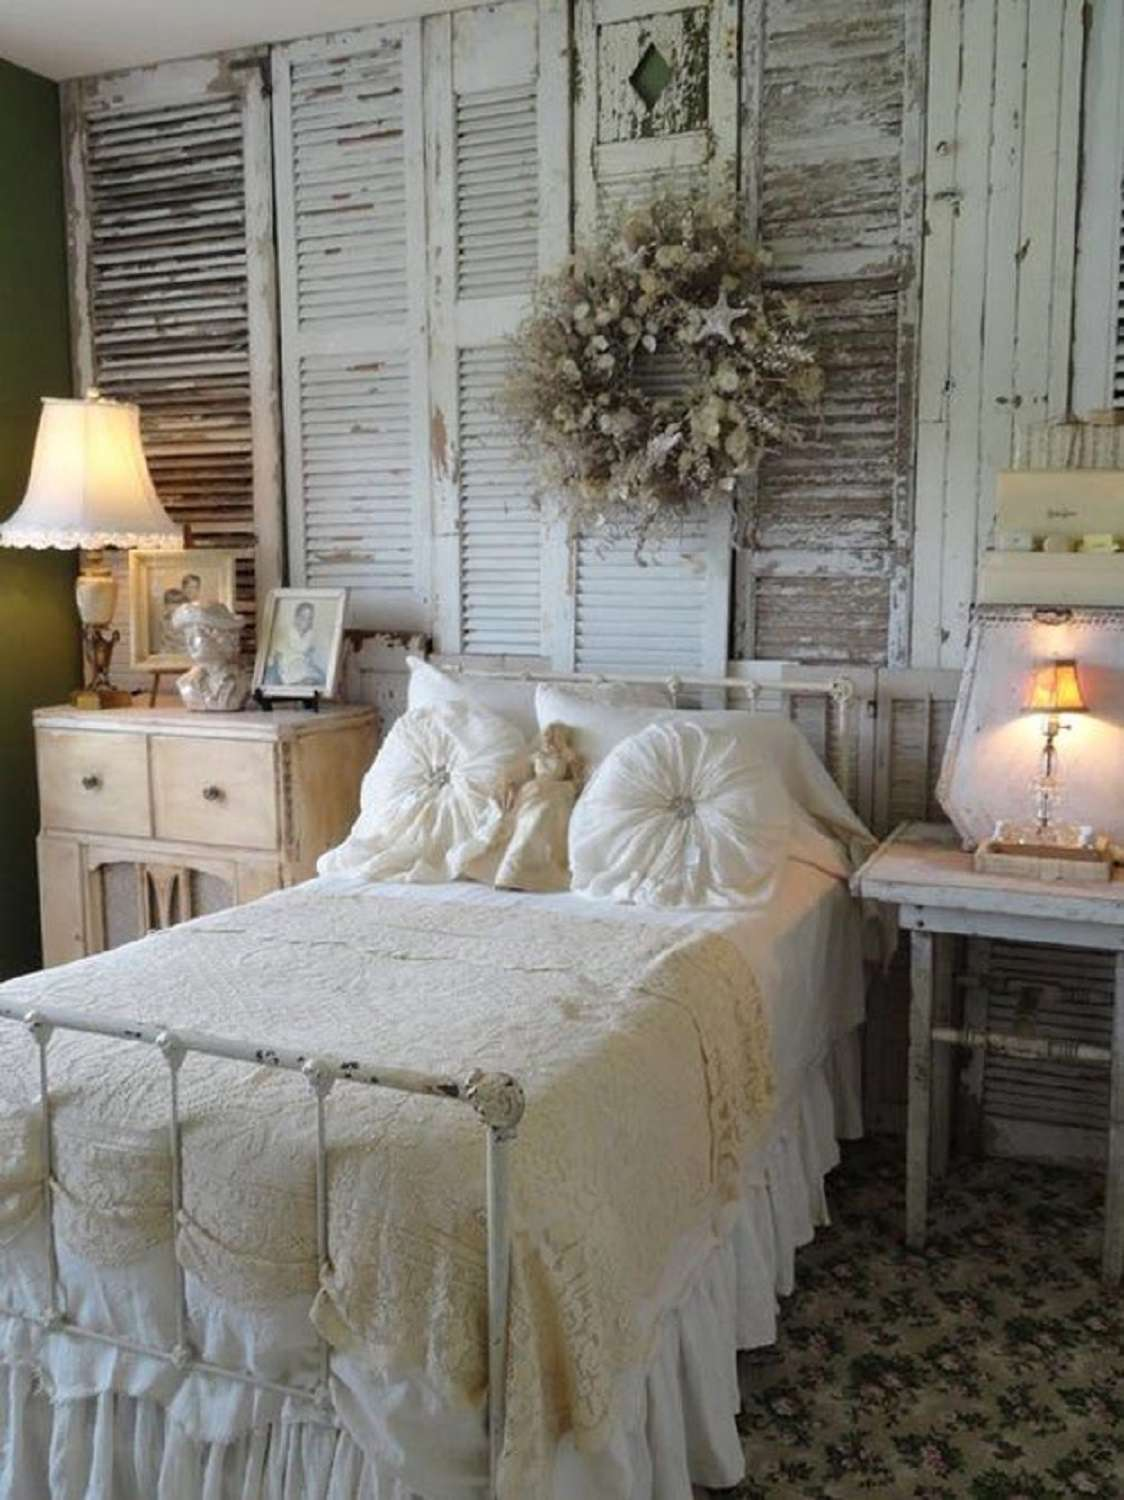 headboard linen co king cotton vintage french frame upholstered nexspace in our bed size style with natural